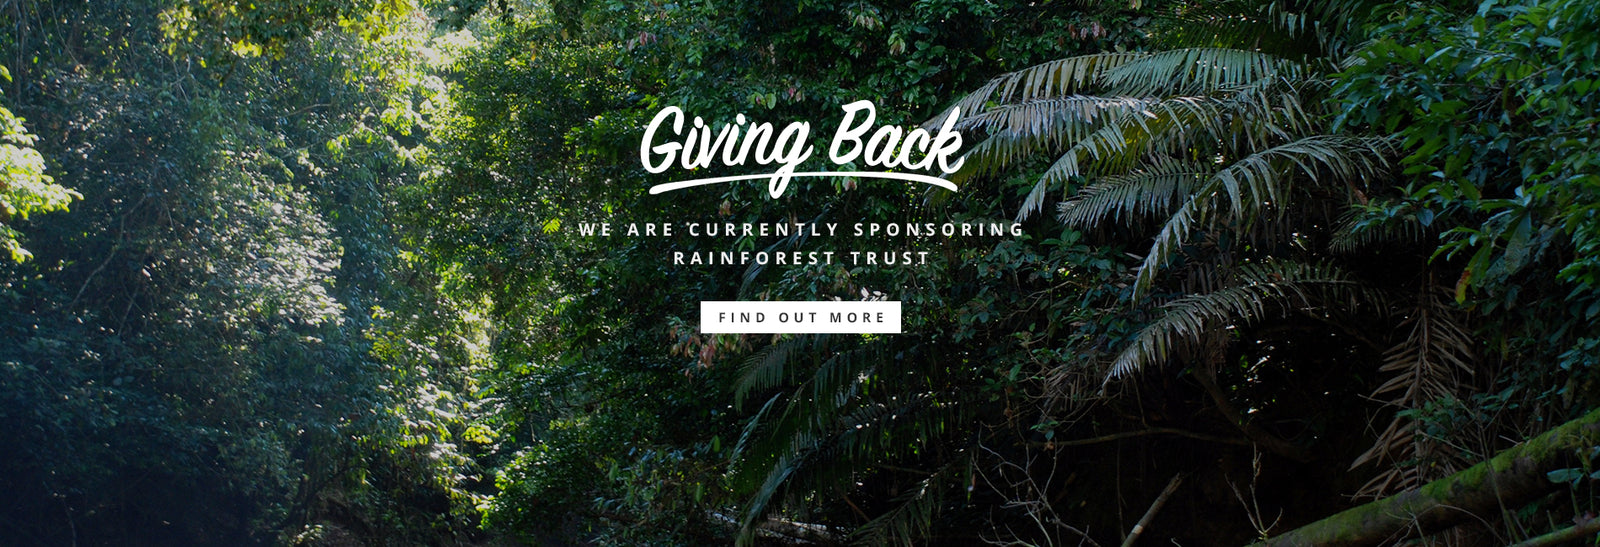 EnviroBuild Rainforest Trust Donation